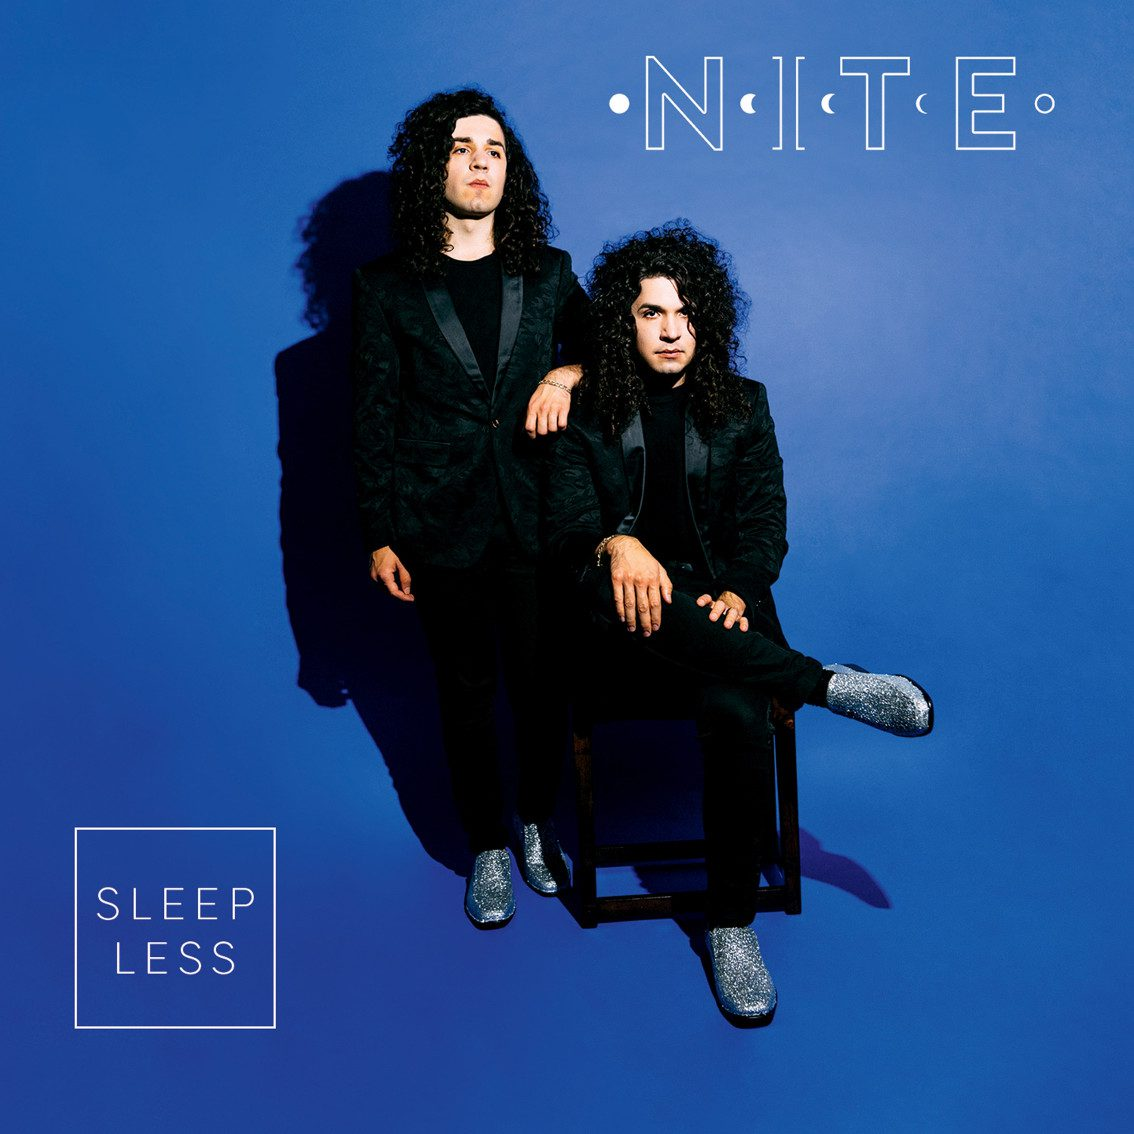 Nite announce their new album 'Sleepless' - music video for 'All You've Ever Dreamed Of' out now